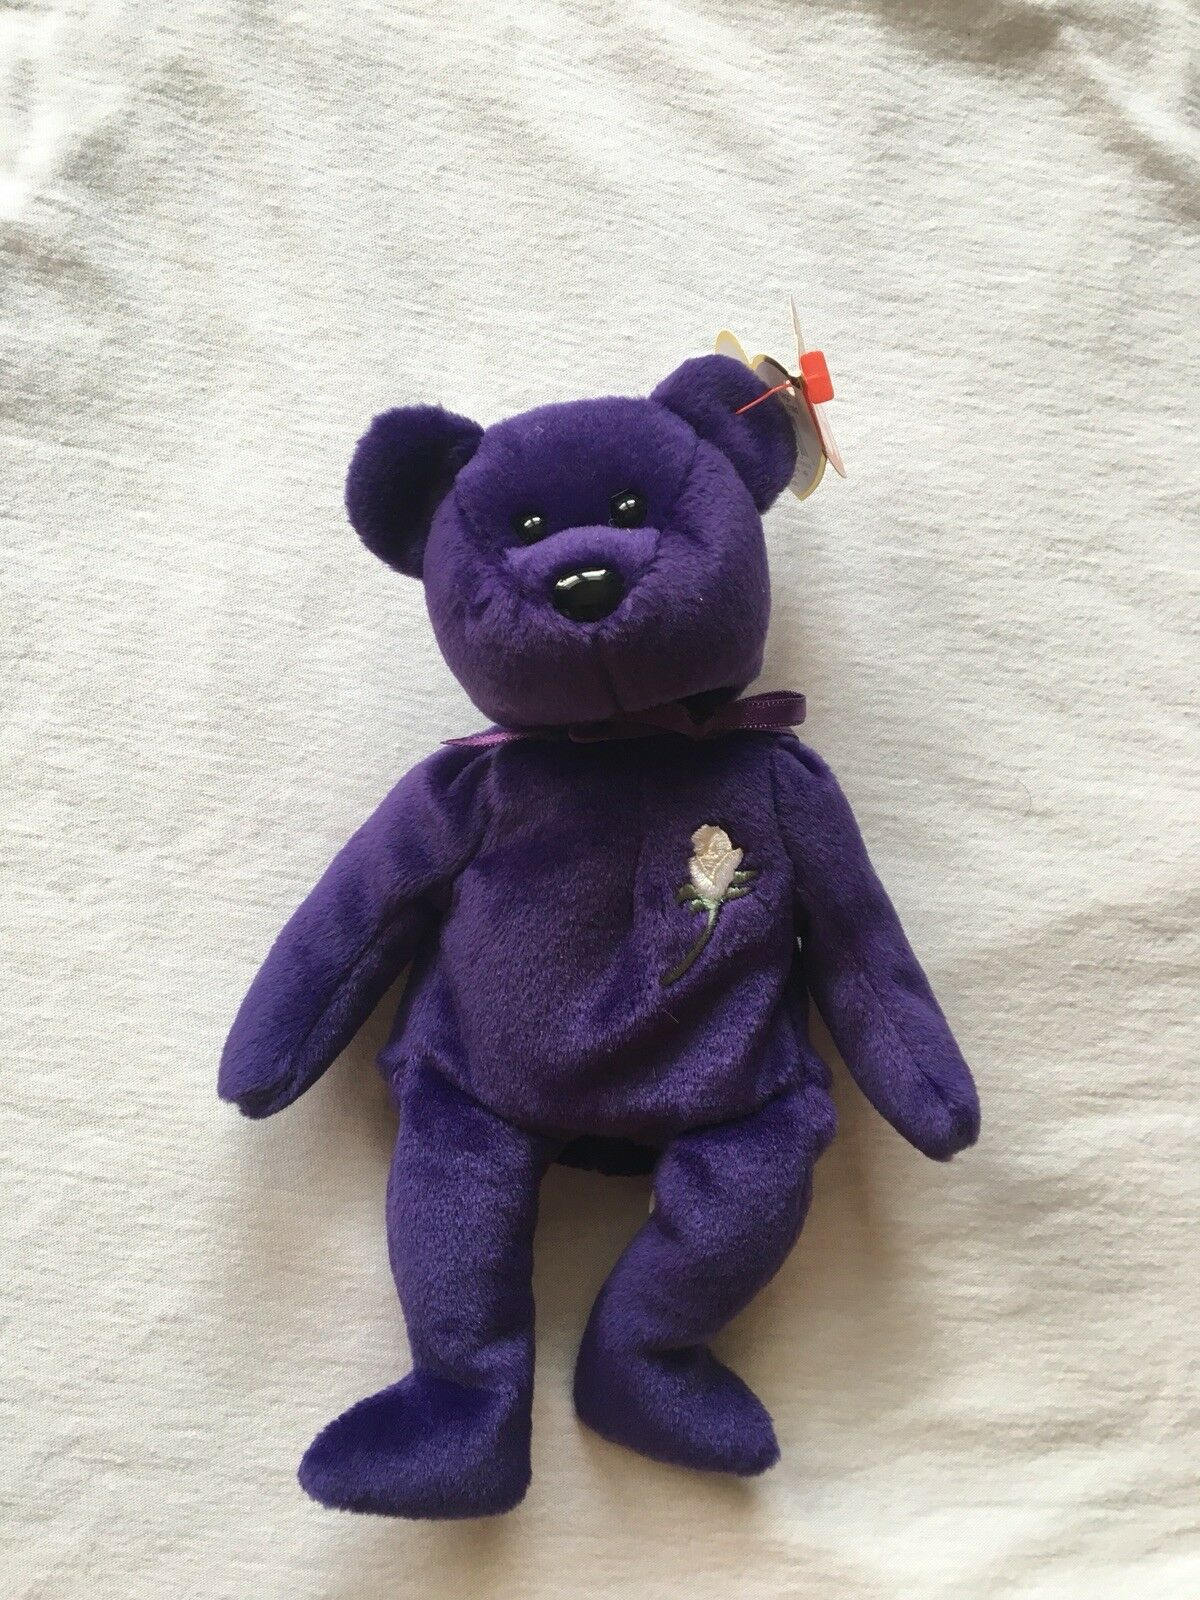 Princess Diana Beanie Baby (Ty 1997 1st Edition Retired) EXCELLENT CONDITION